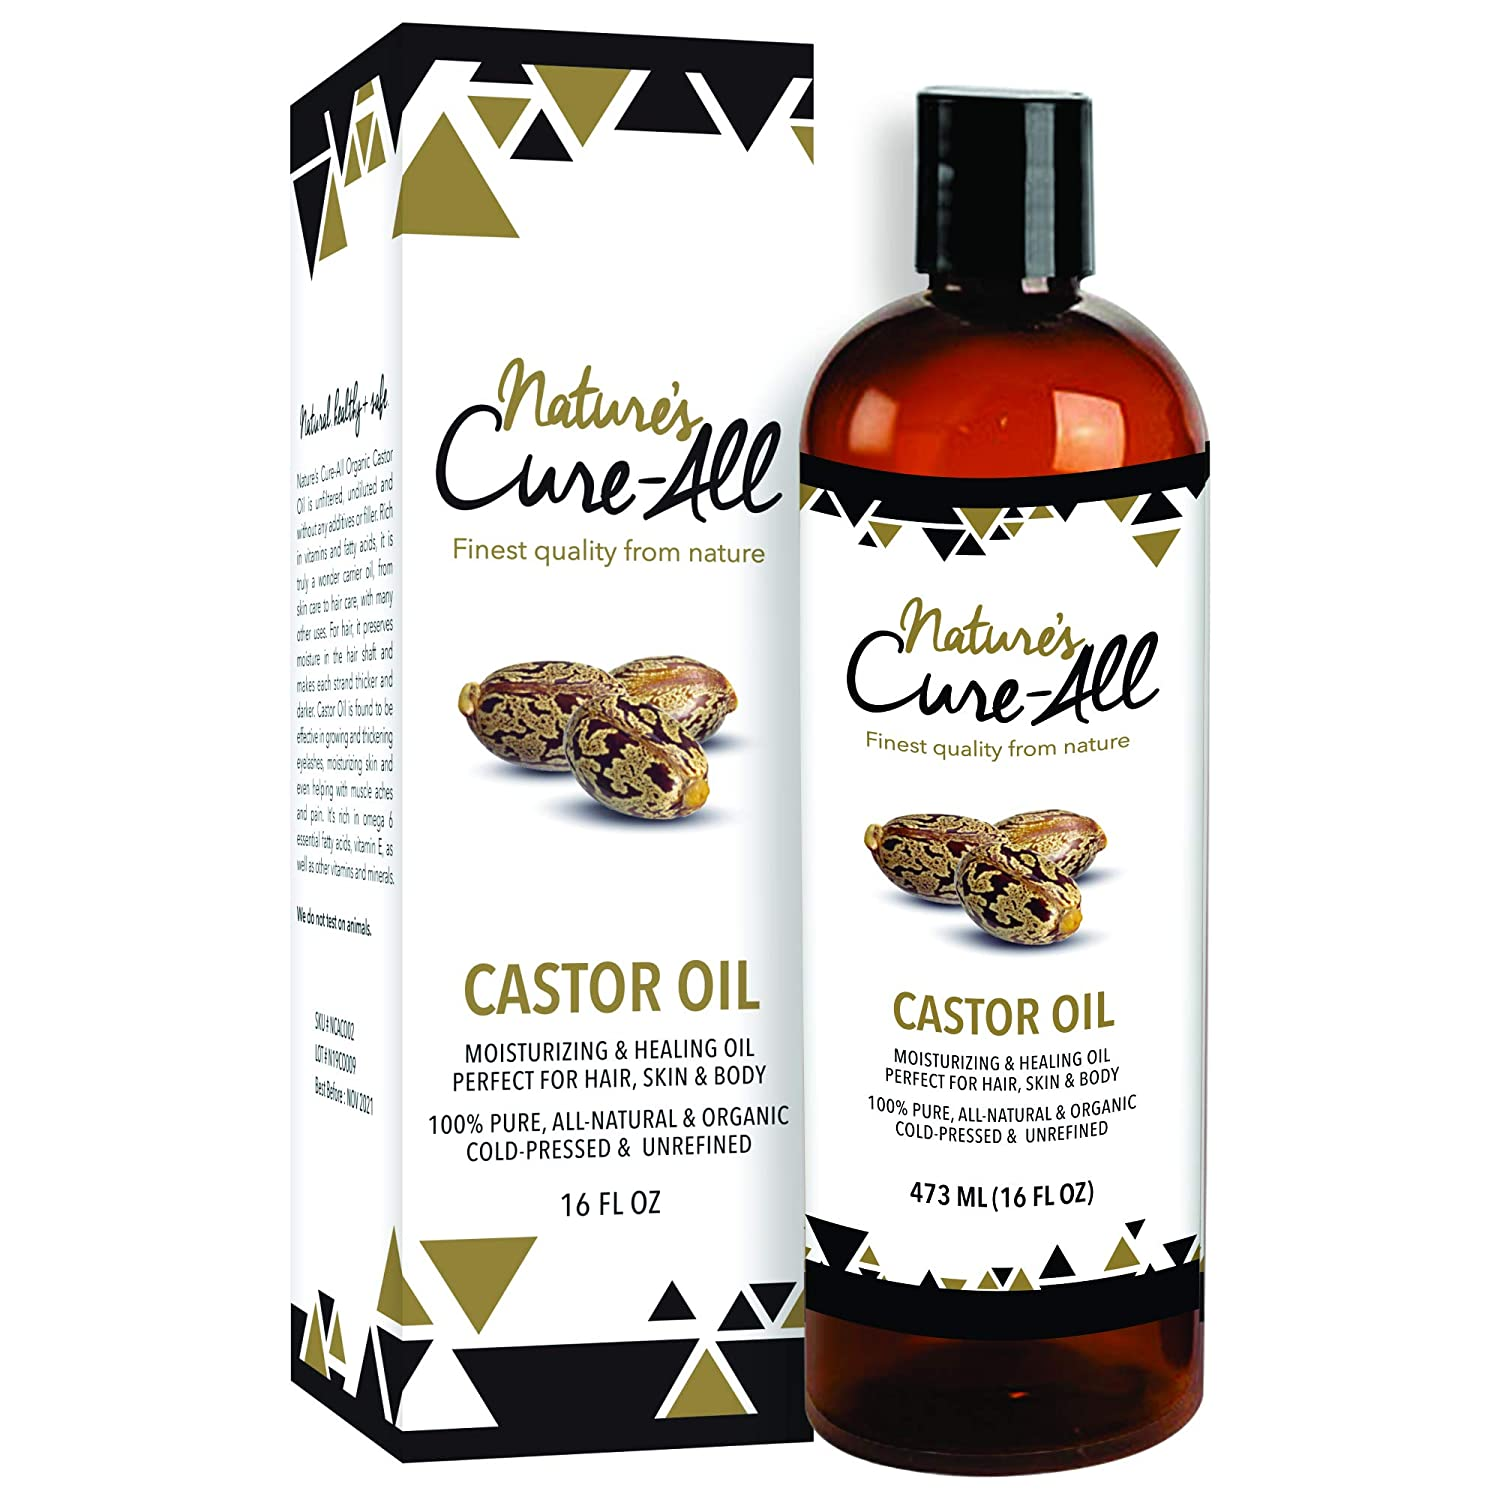 Nature's Cure-All Organic Castor Oil 16oz, Natural, Cold-Pressed and Unrefined Oil